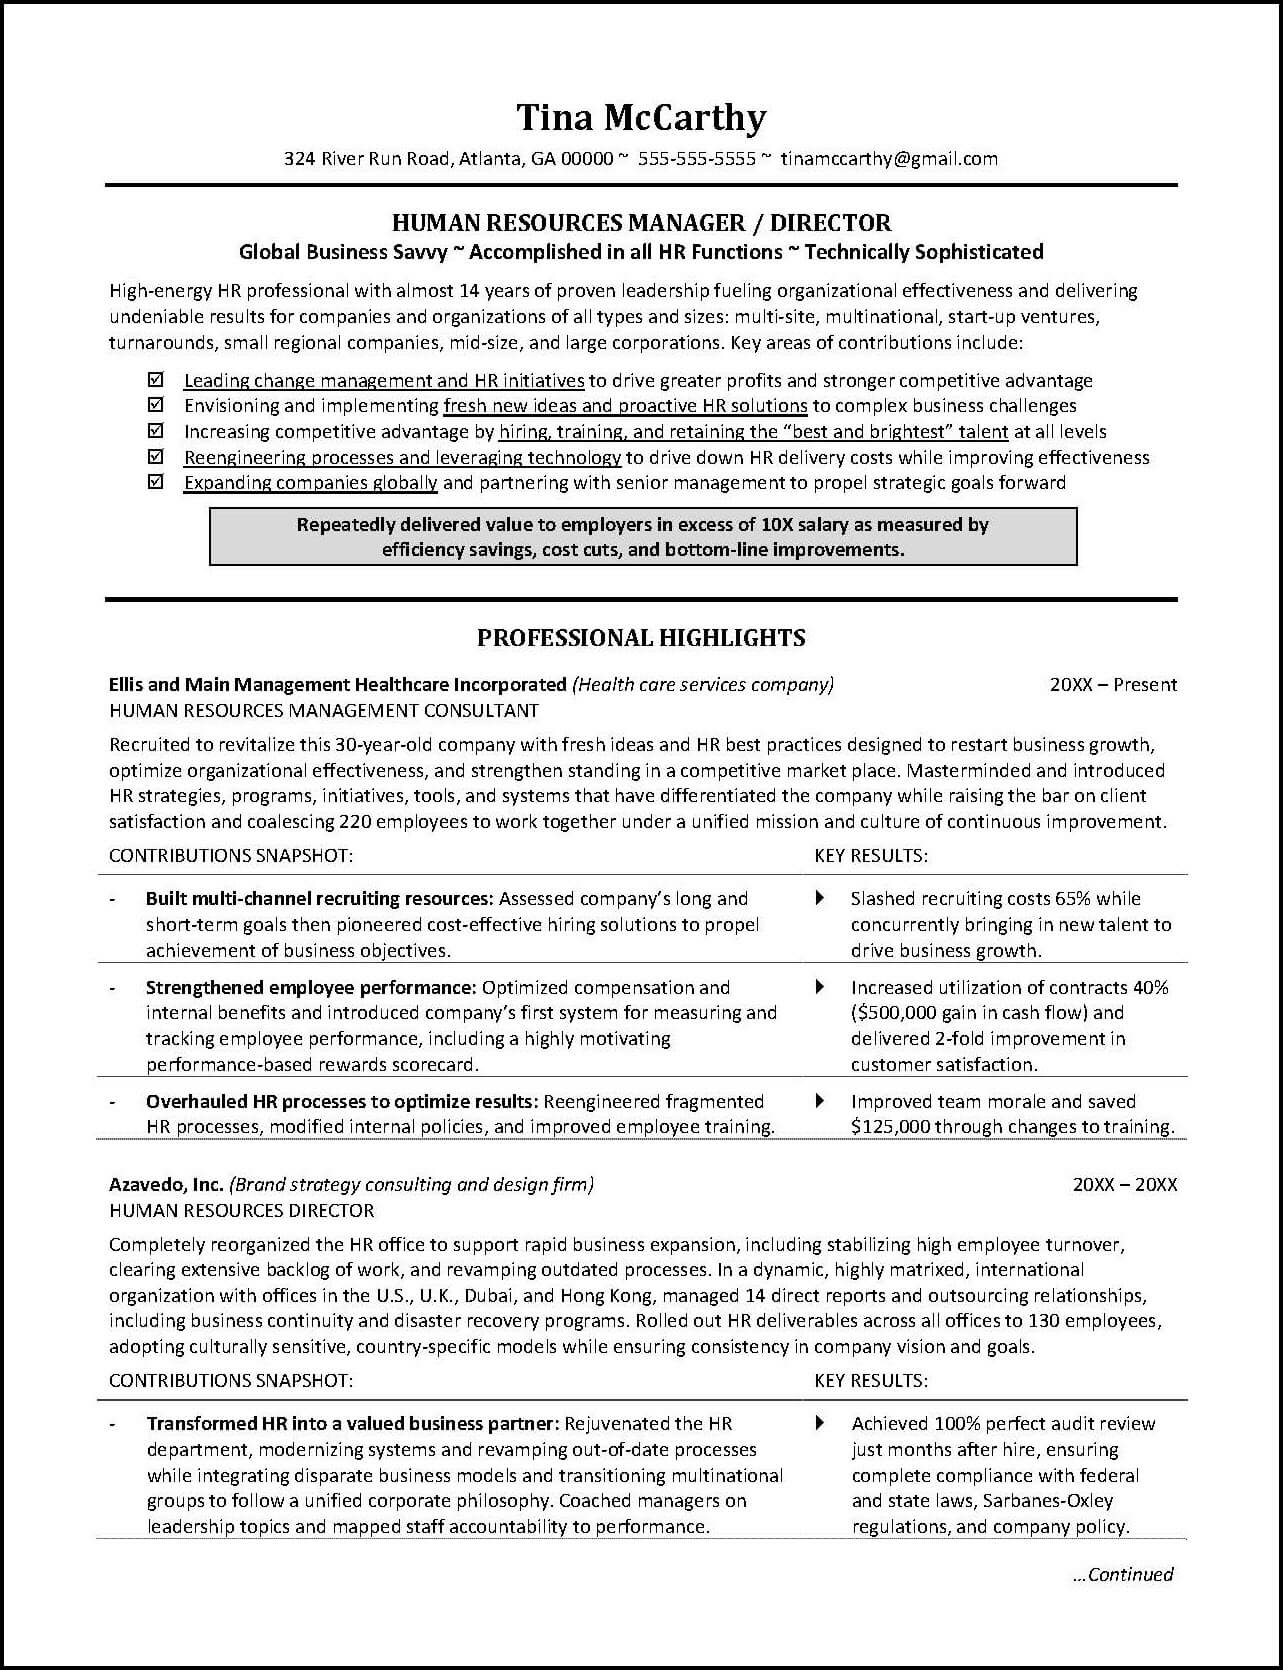 Human Resources Resume Page 1  Human Resources Job Description Resume